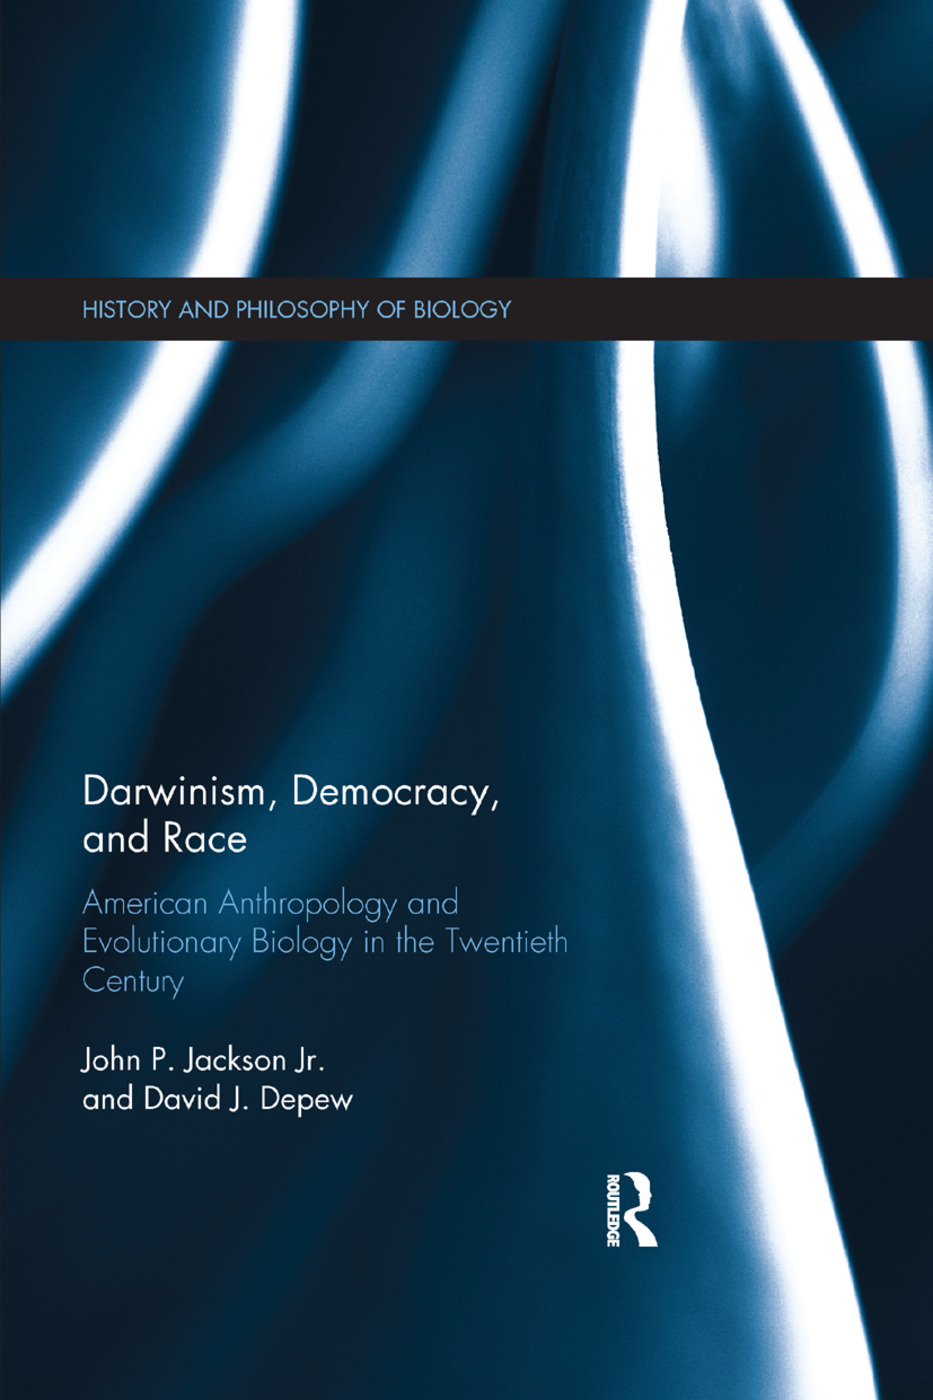 Darwinism, Democracy, and Race